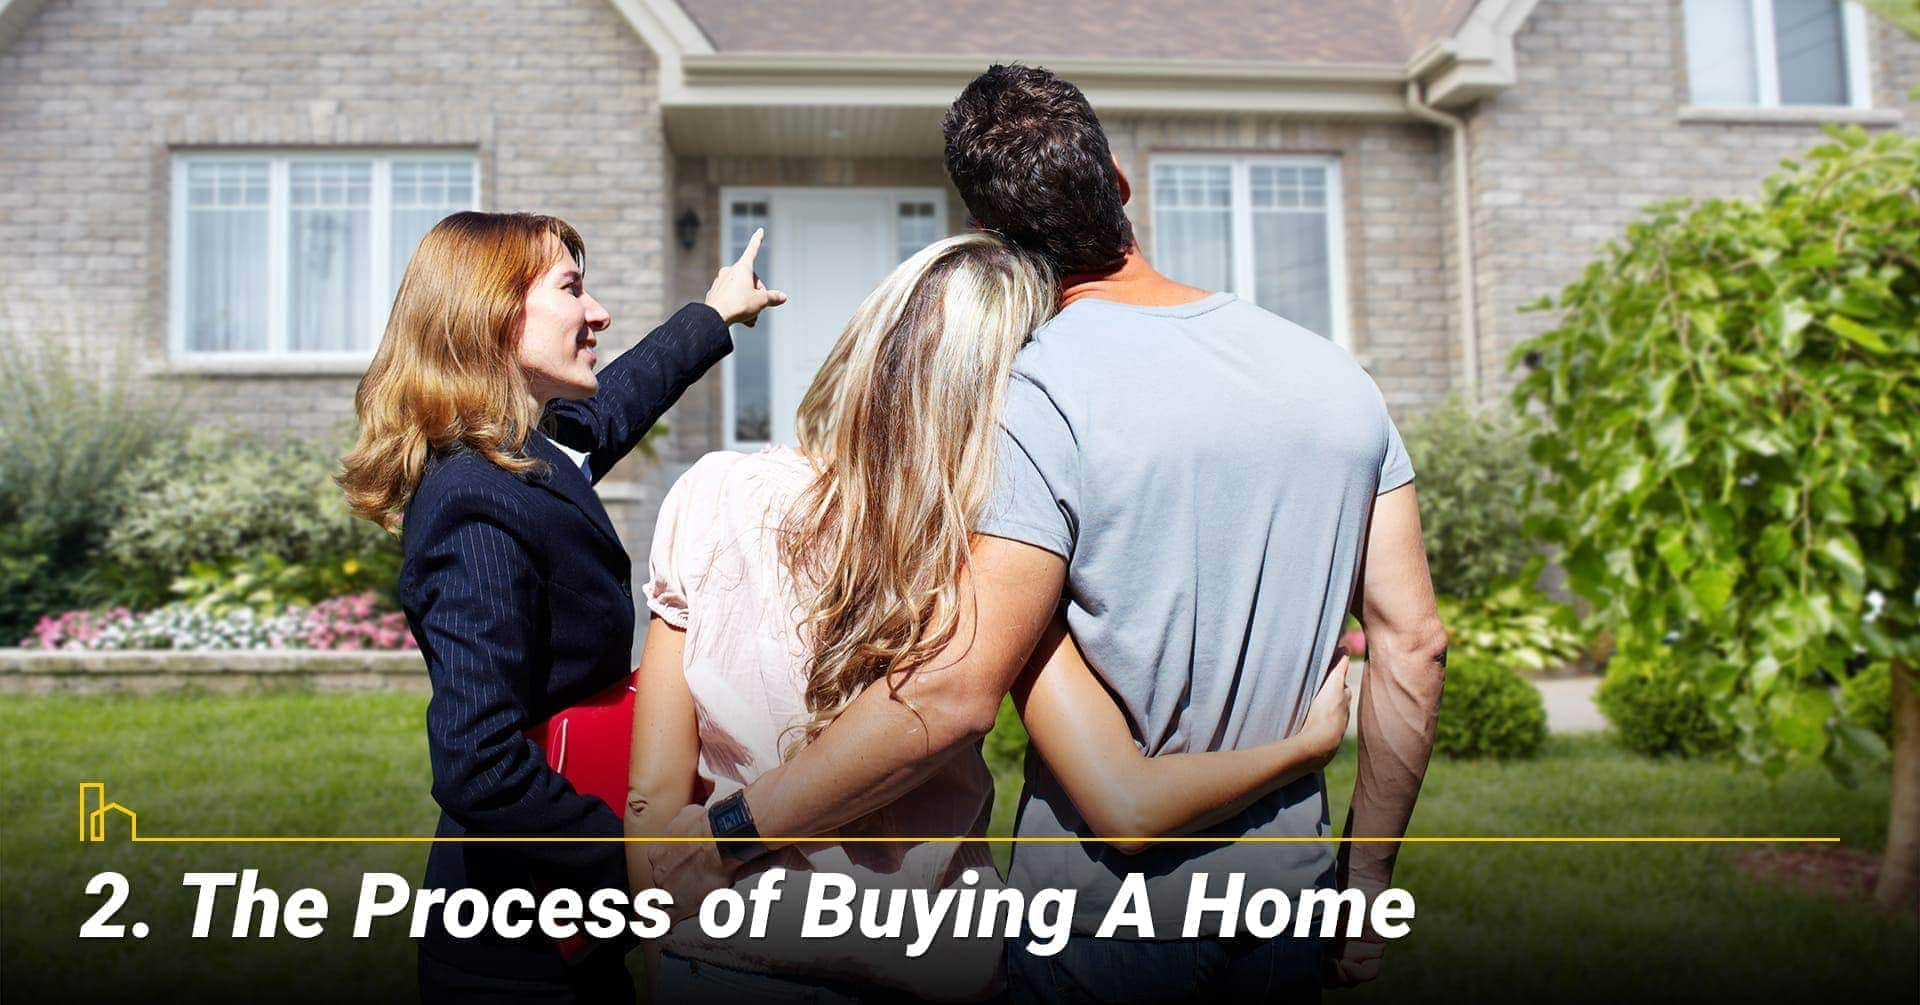 The Process of Buying A Home